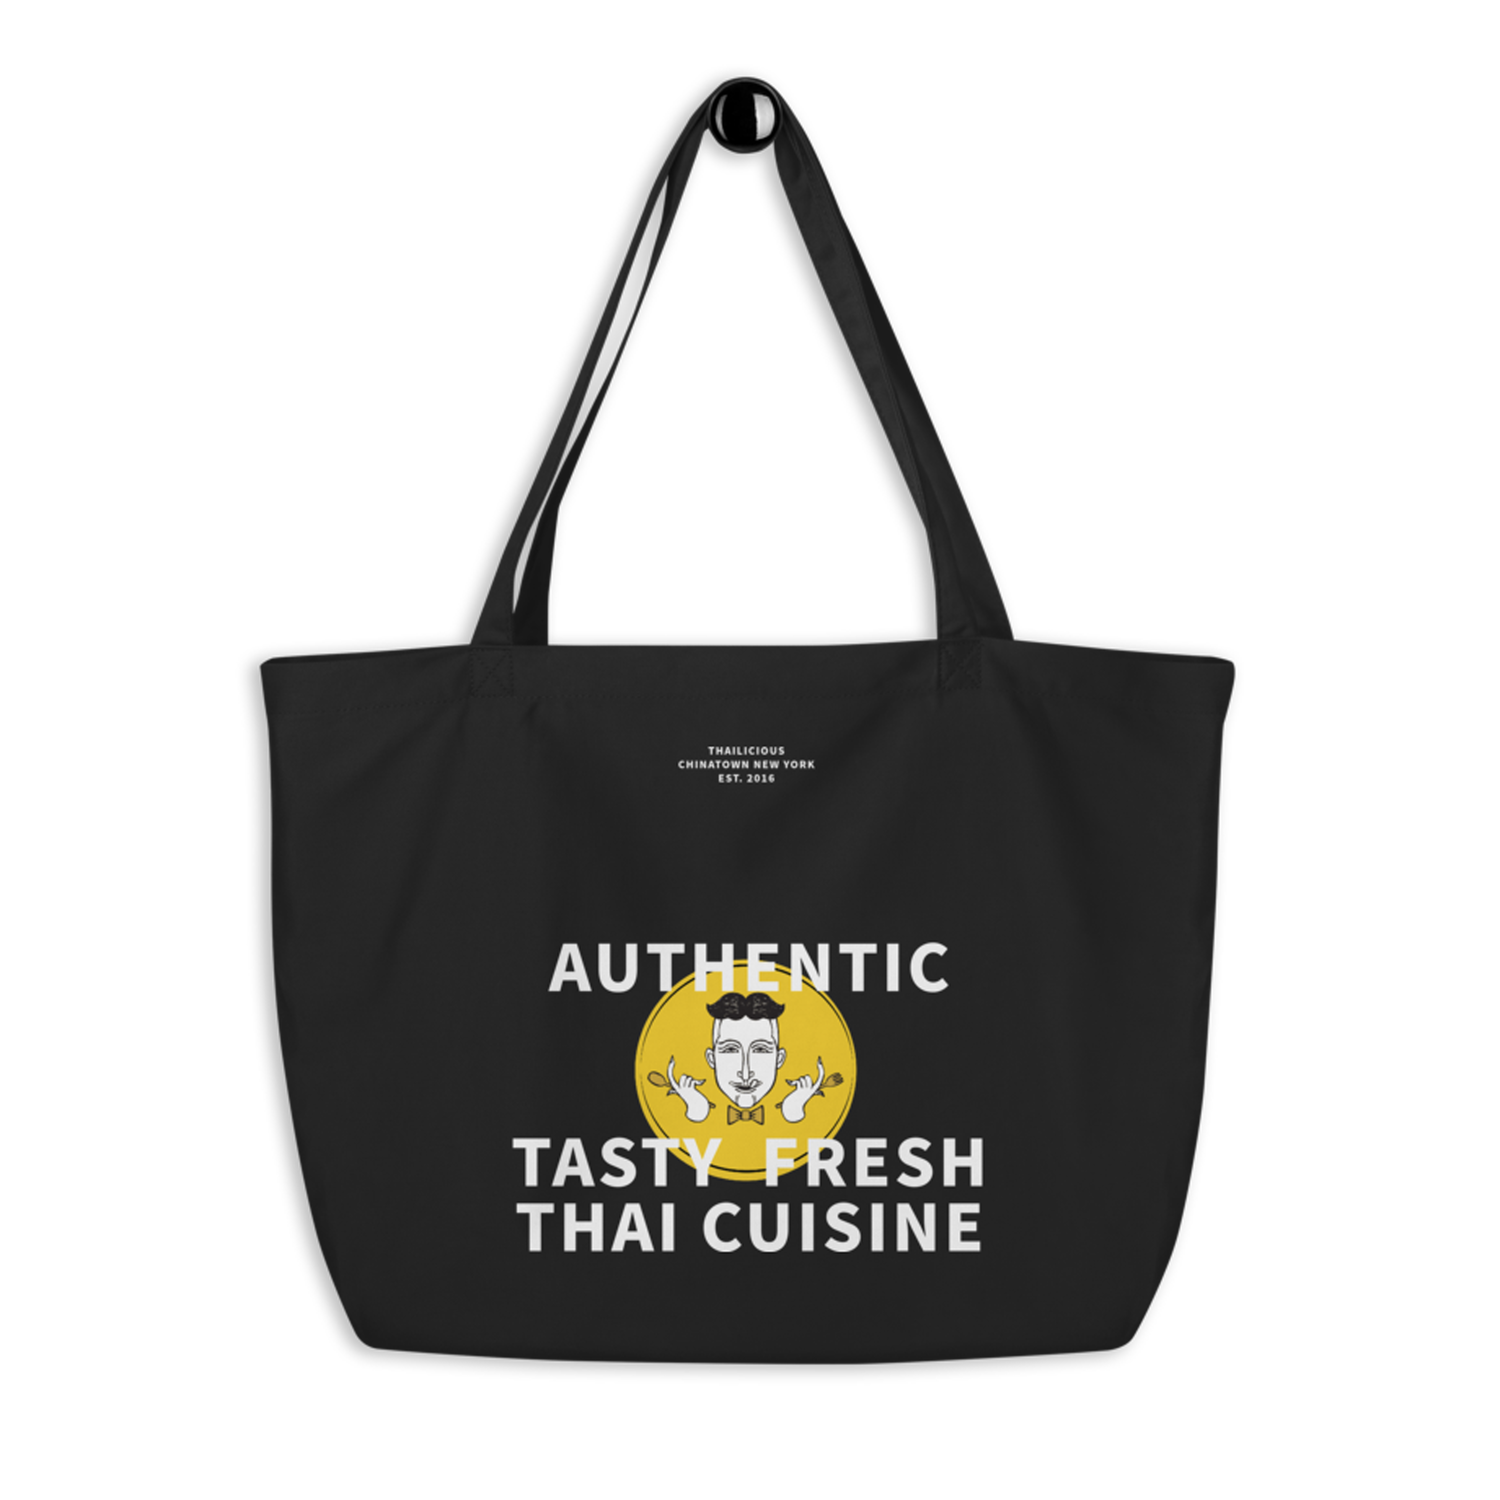 shopify-thailicious_product-image-Tote_02.png